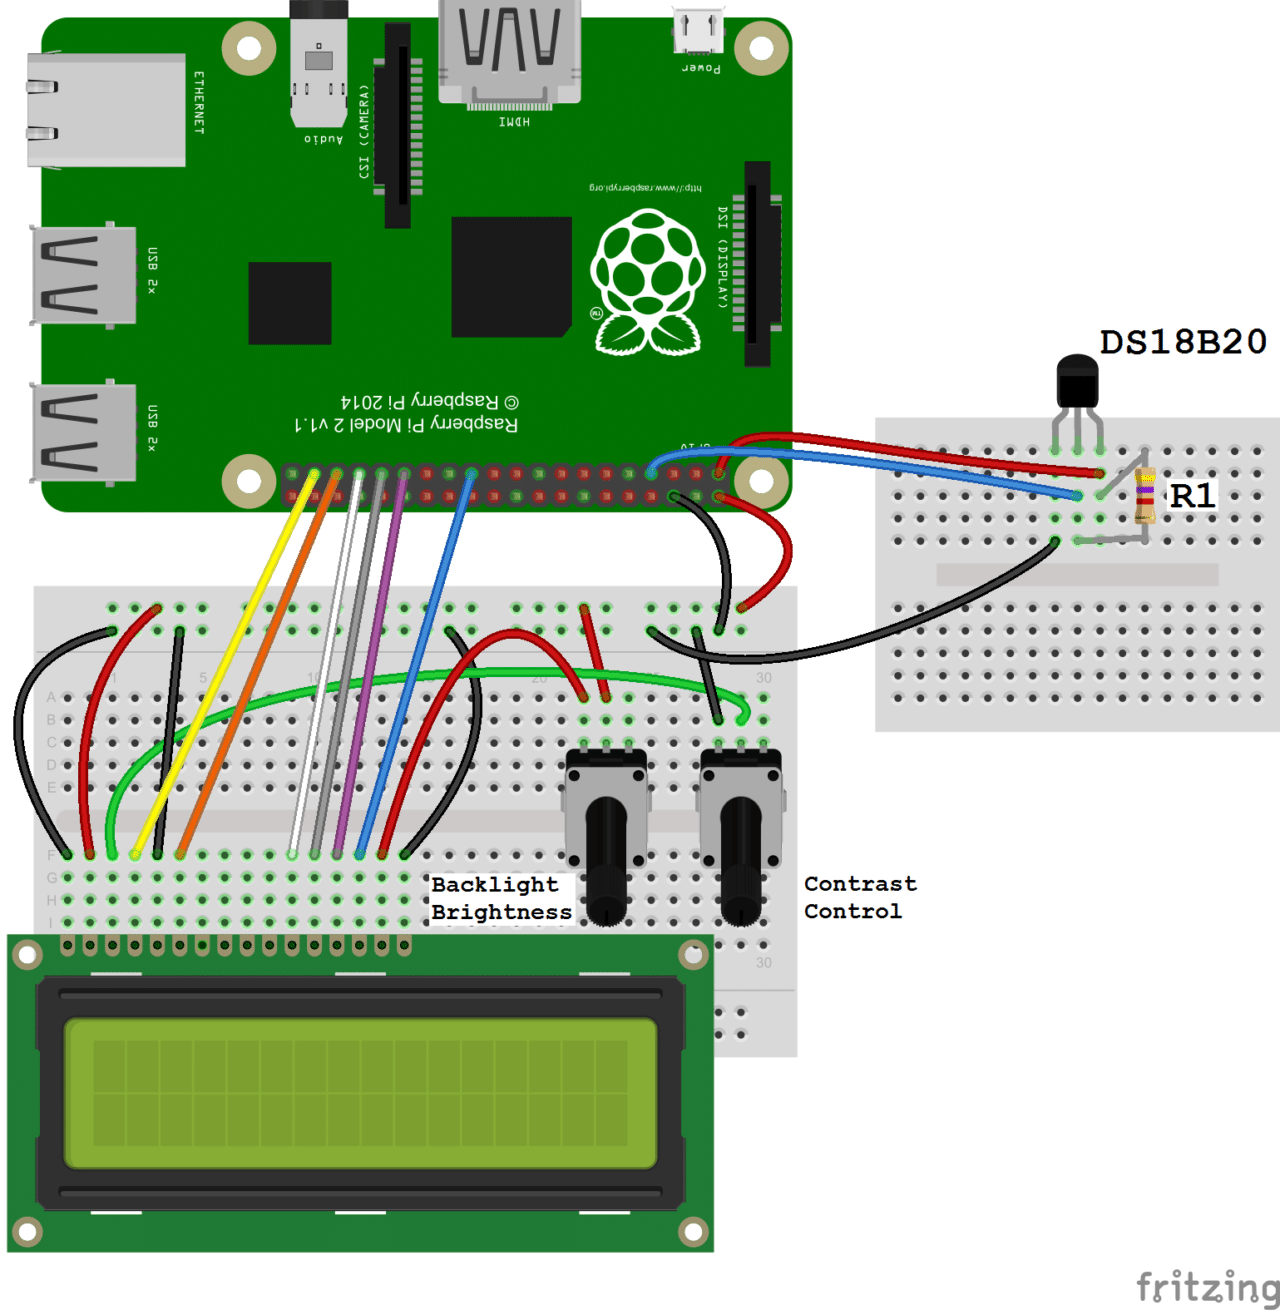 Raspberry Pi Ds18b20 Temperature Sensor Tutorial Circuit Basics Ssr 125 Wiring Diagram Get Free Image About For Lcd Output Follow This